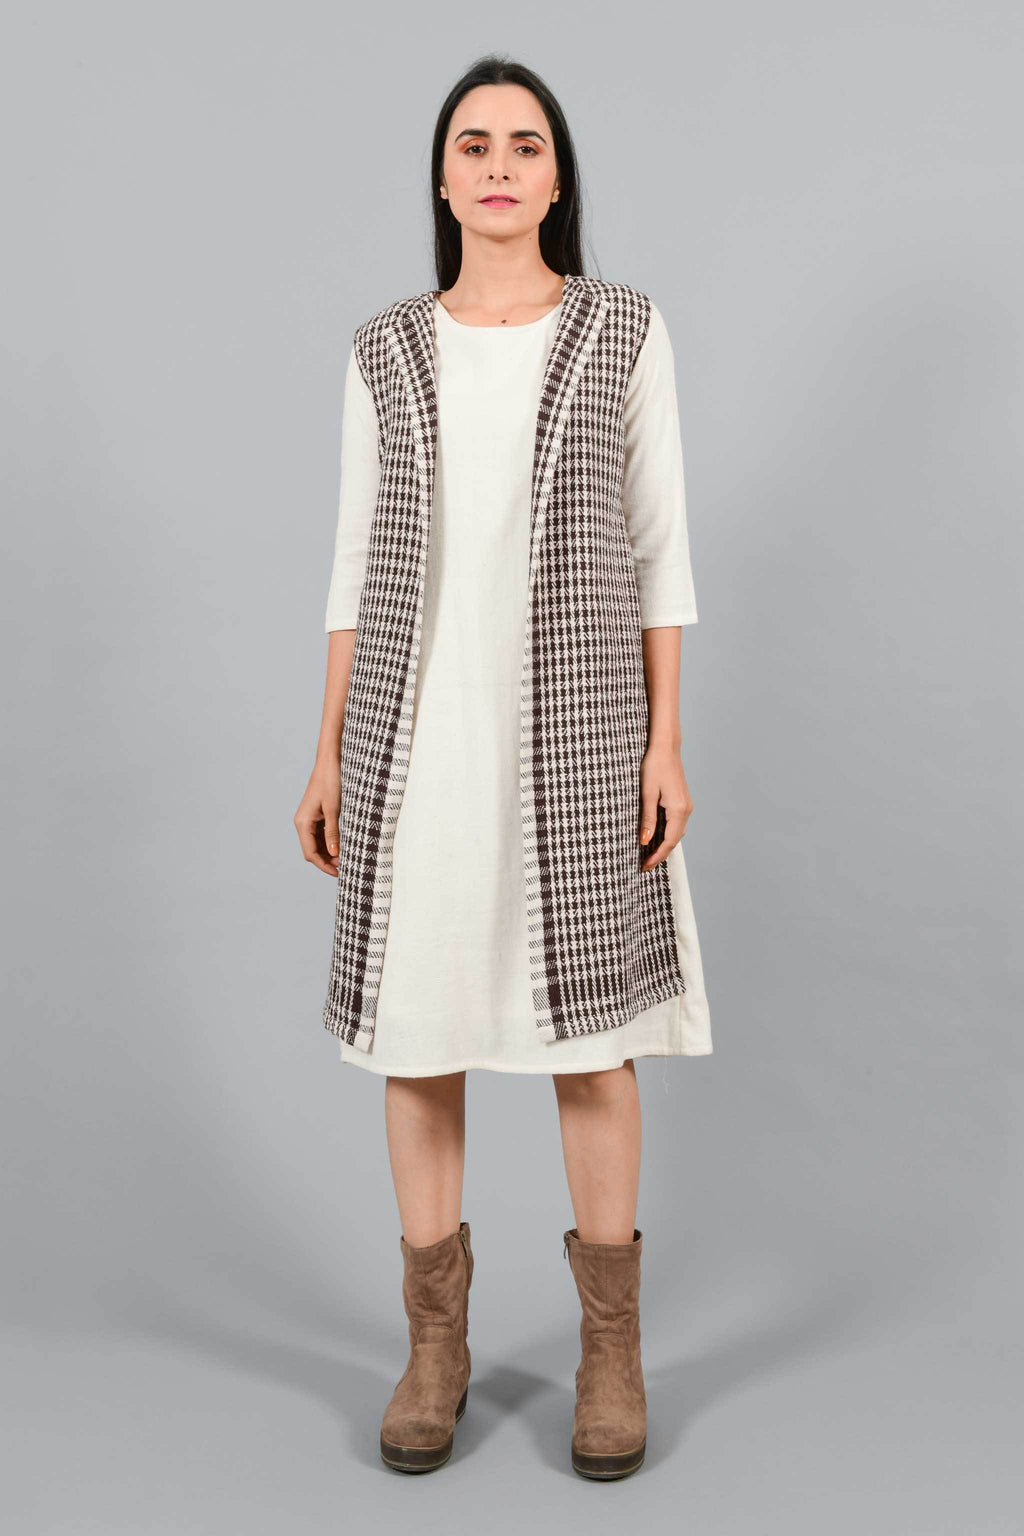 Front pose of an Indian Womenswear female model wearing Kora Brown handspun and handwoven khadi long Jacket over an off-white cashmere cotton dress by Cotton Rack.